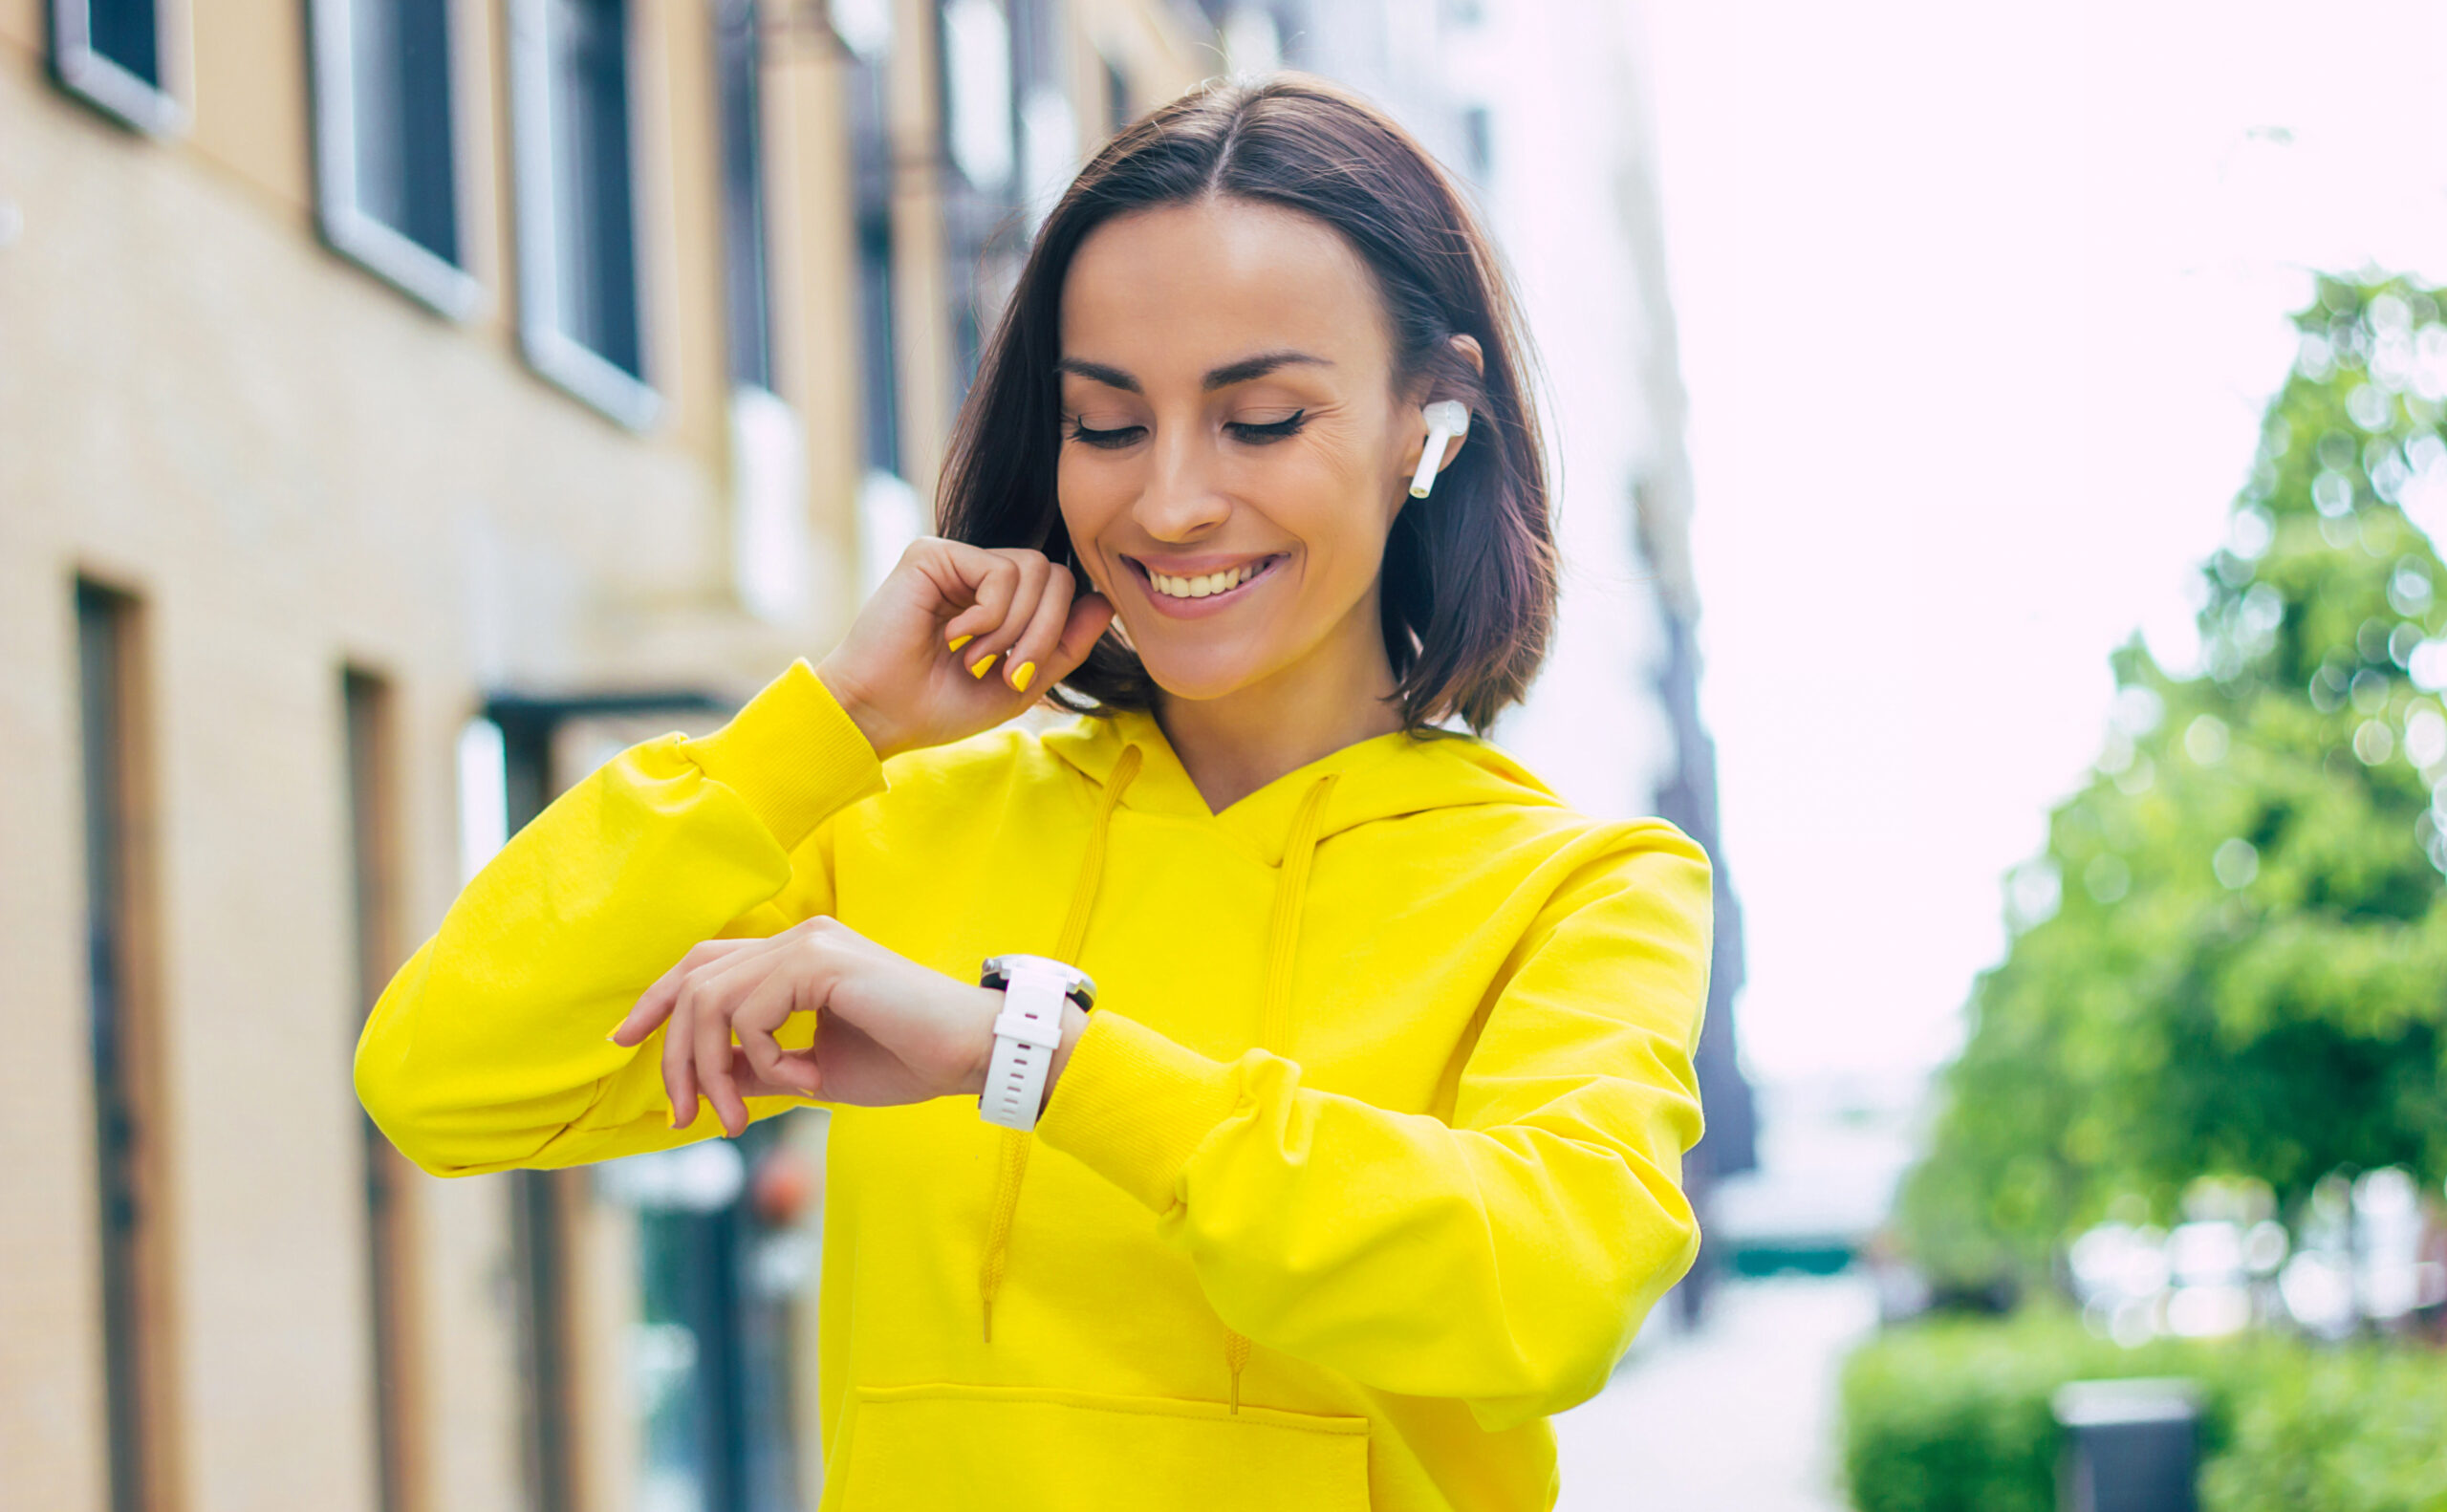 Calling All Tech Heads: Here Are The Best Smartwatches You Can Buy In 2021!